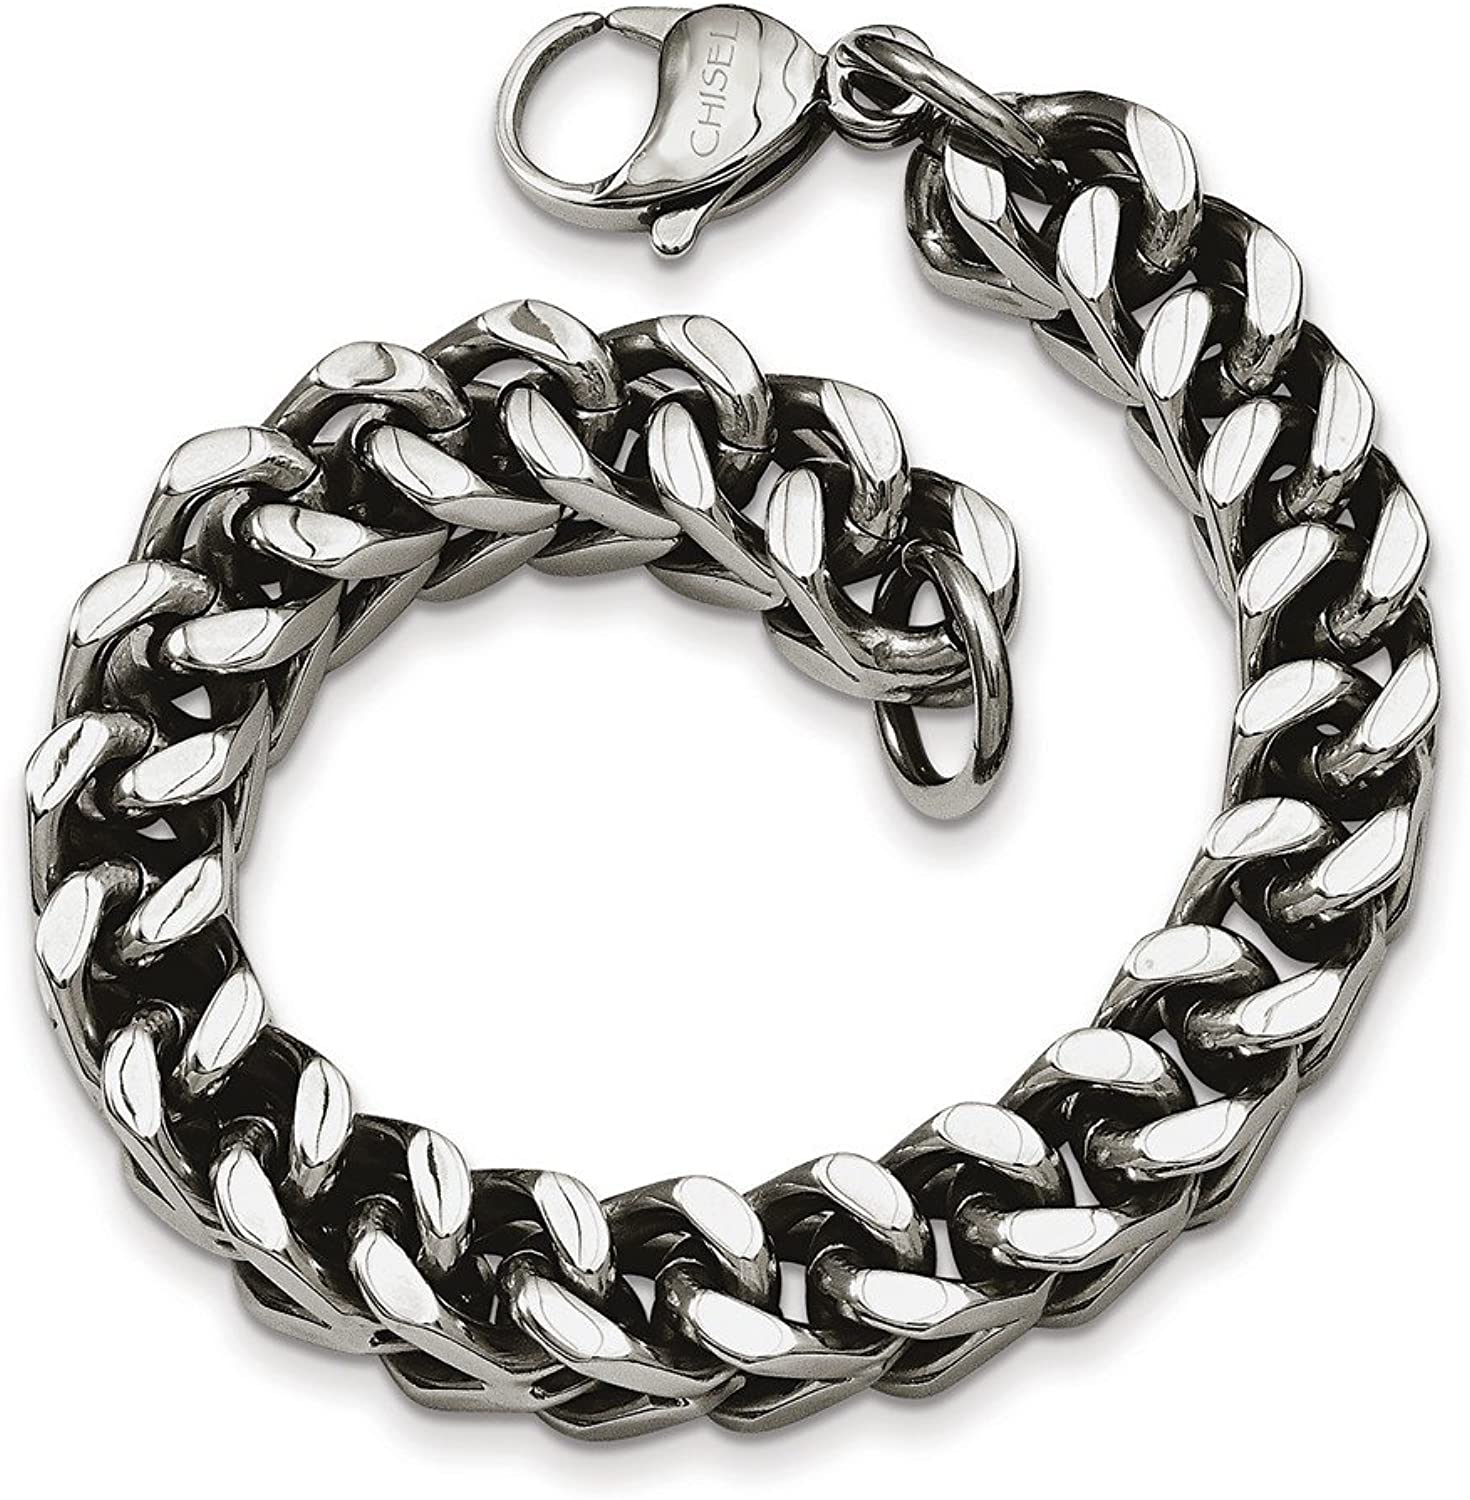 Beautiful Stainless Steel Heavy Wheat 9.5in Bracelet